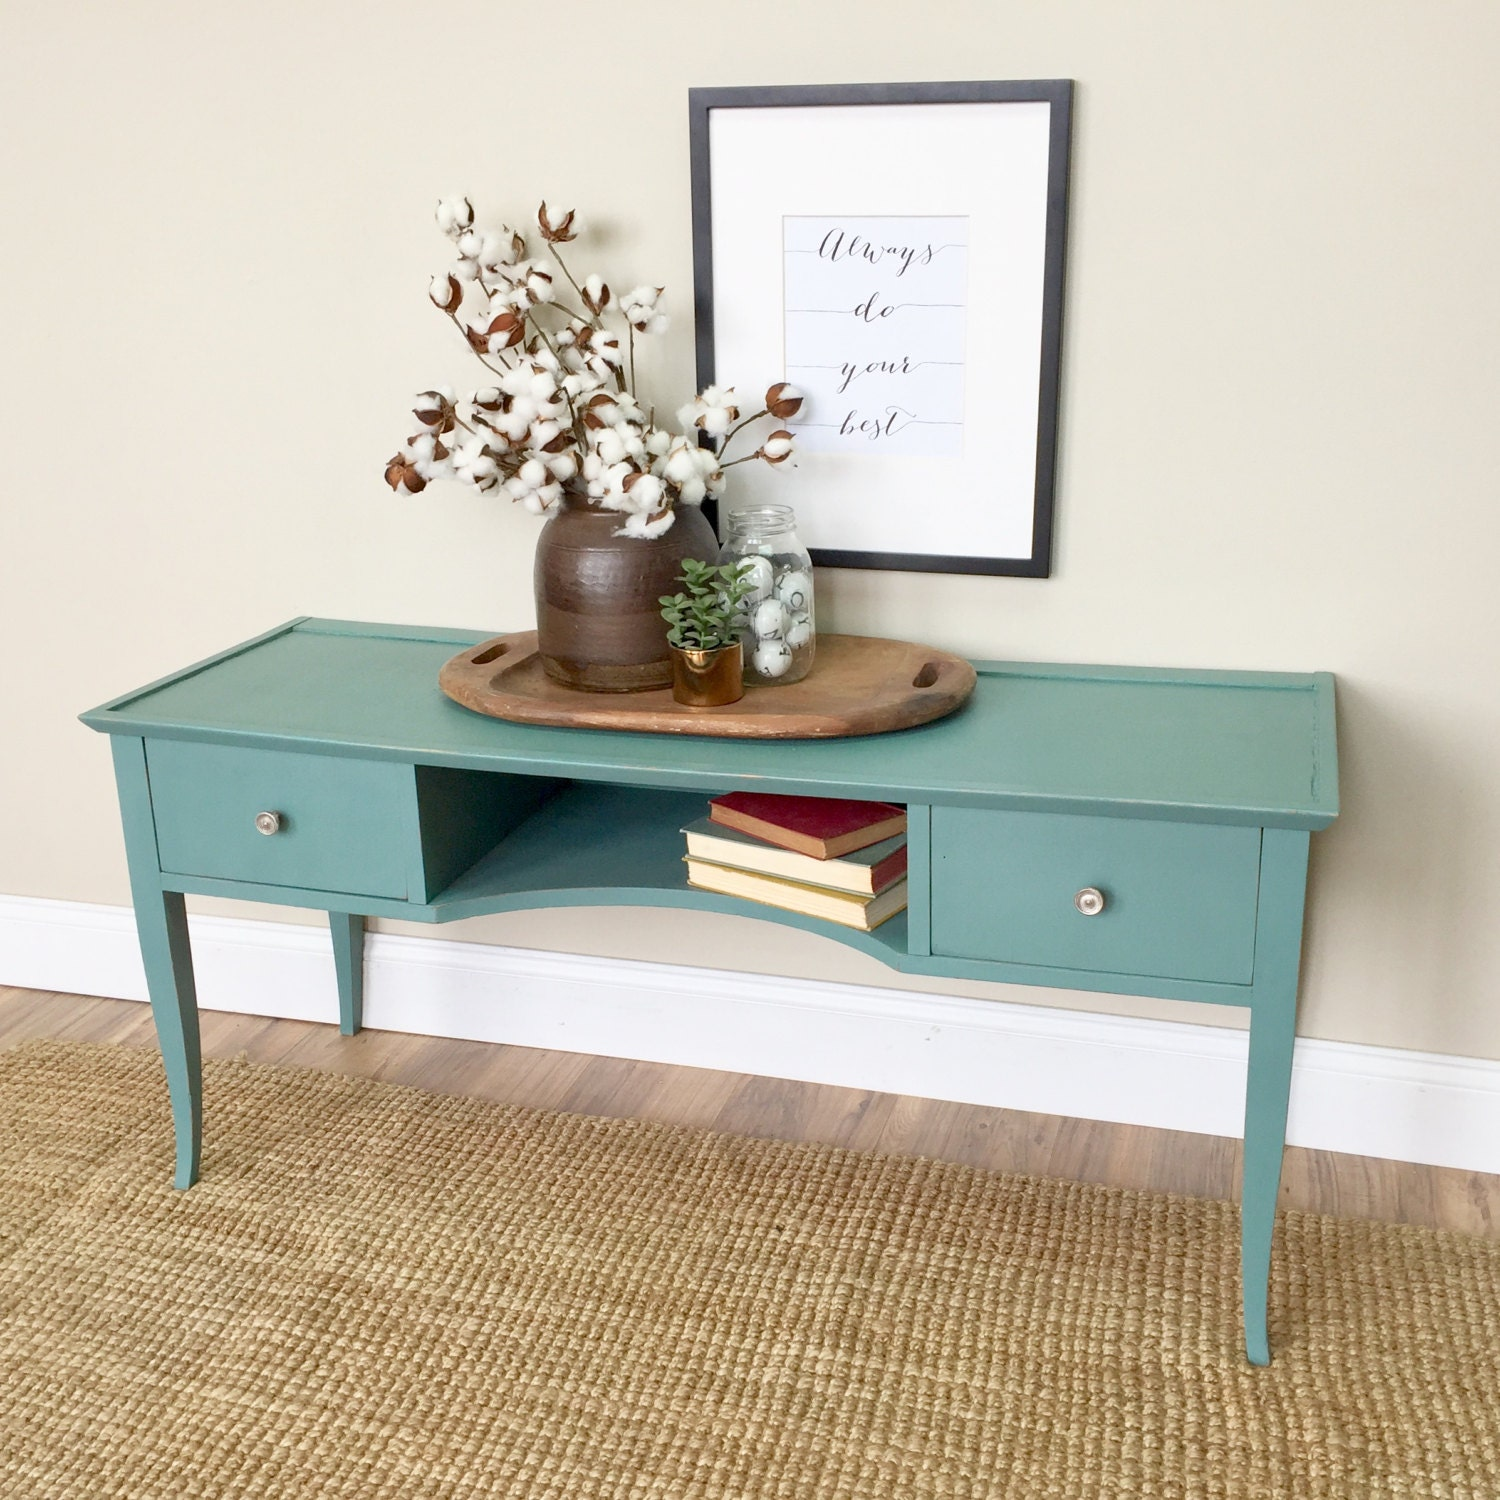 Console table behind